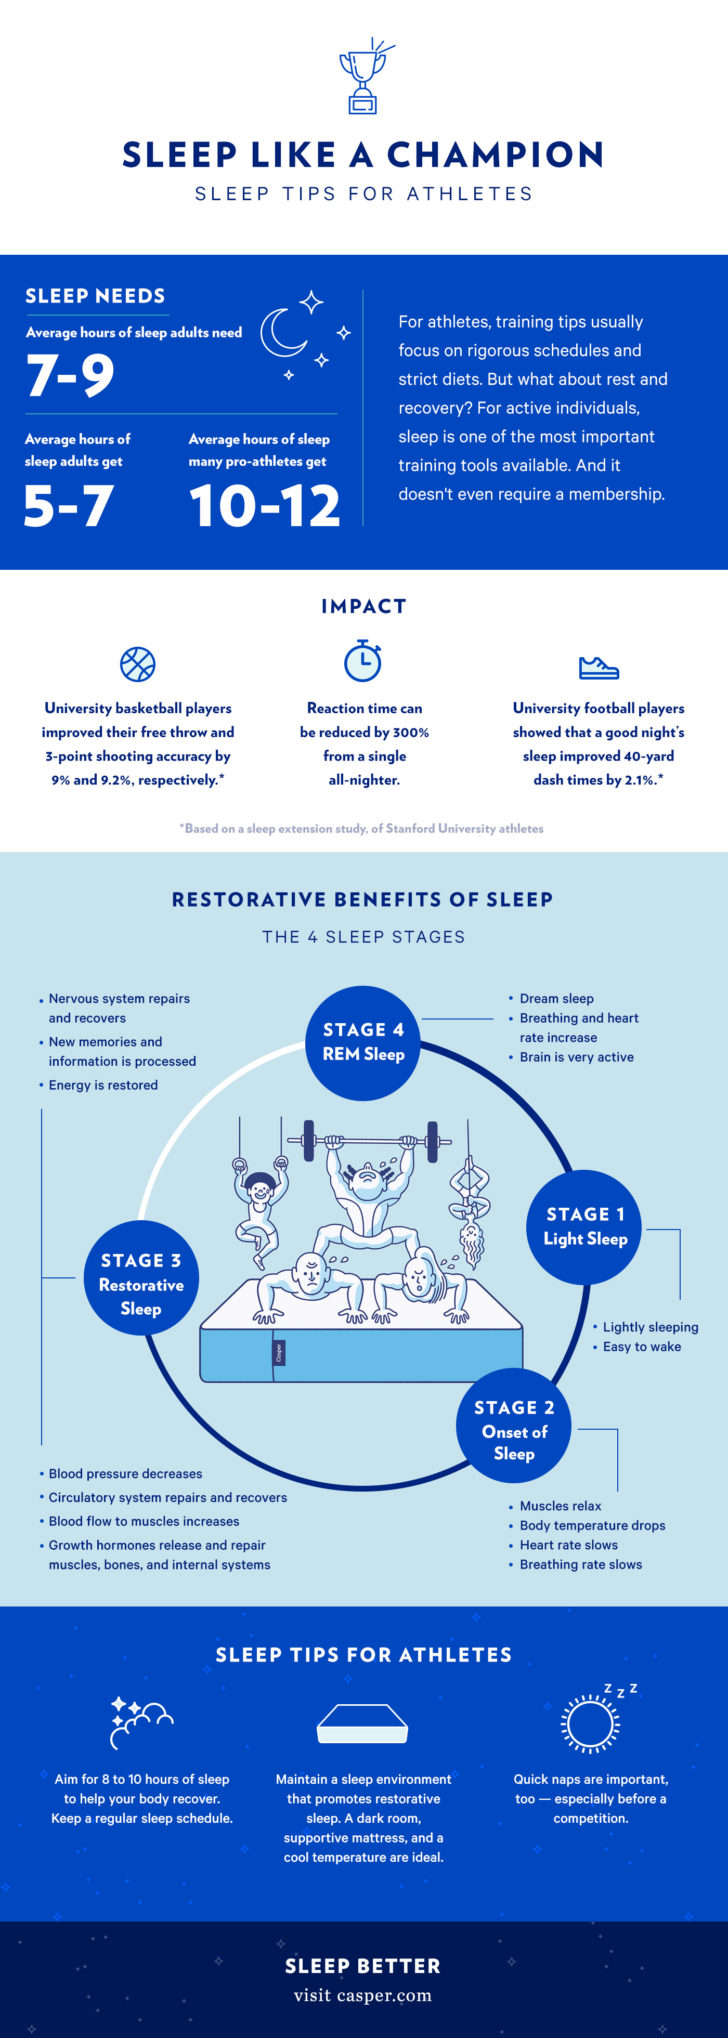 How to Rest More Often to Achieve Optimal Physical Performance